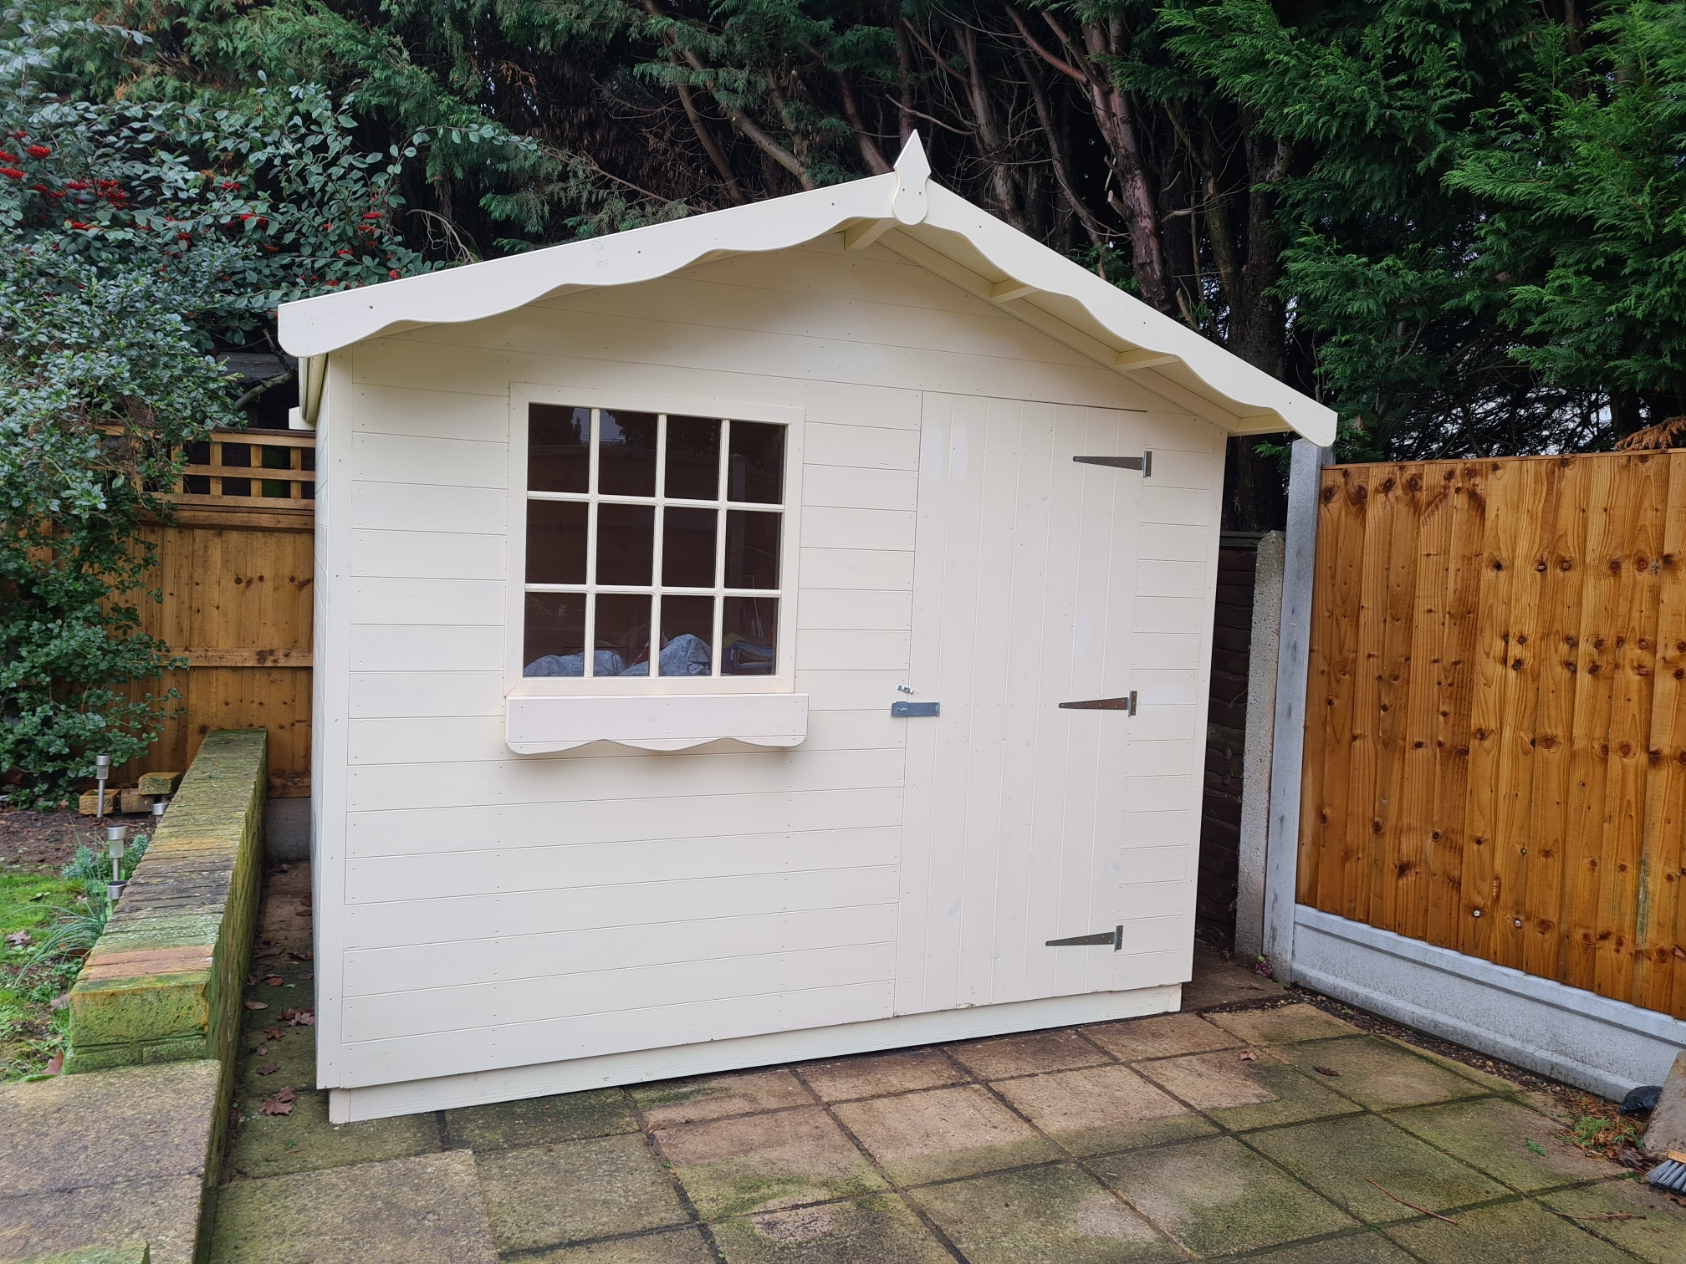 9 x 8 cabin style garden shed  with right hand door.  This has been painted white using Protek Royal Exterior Superior wood finish